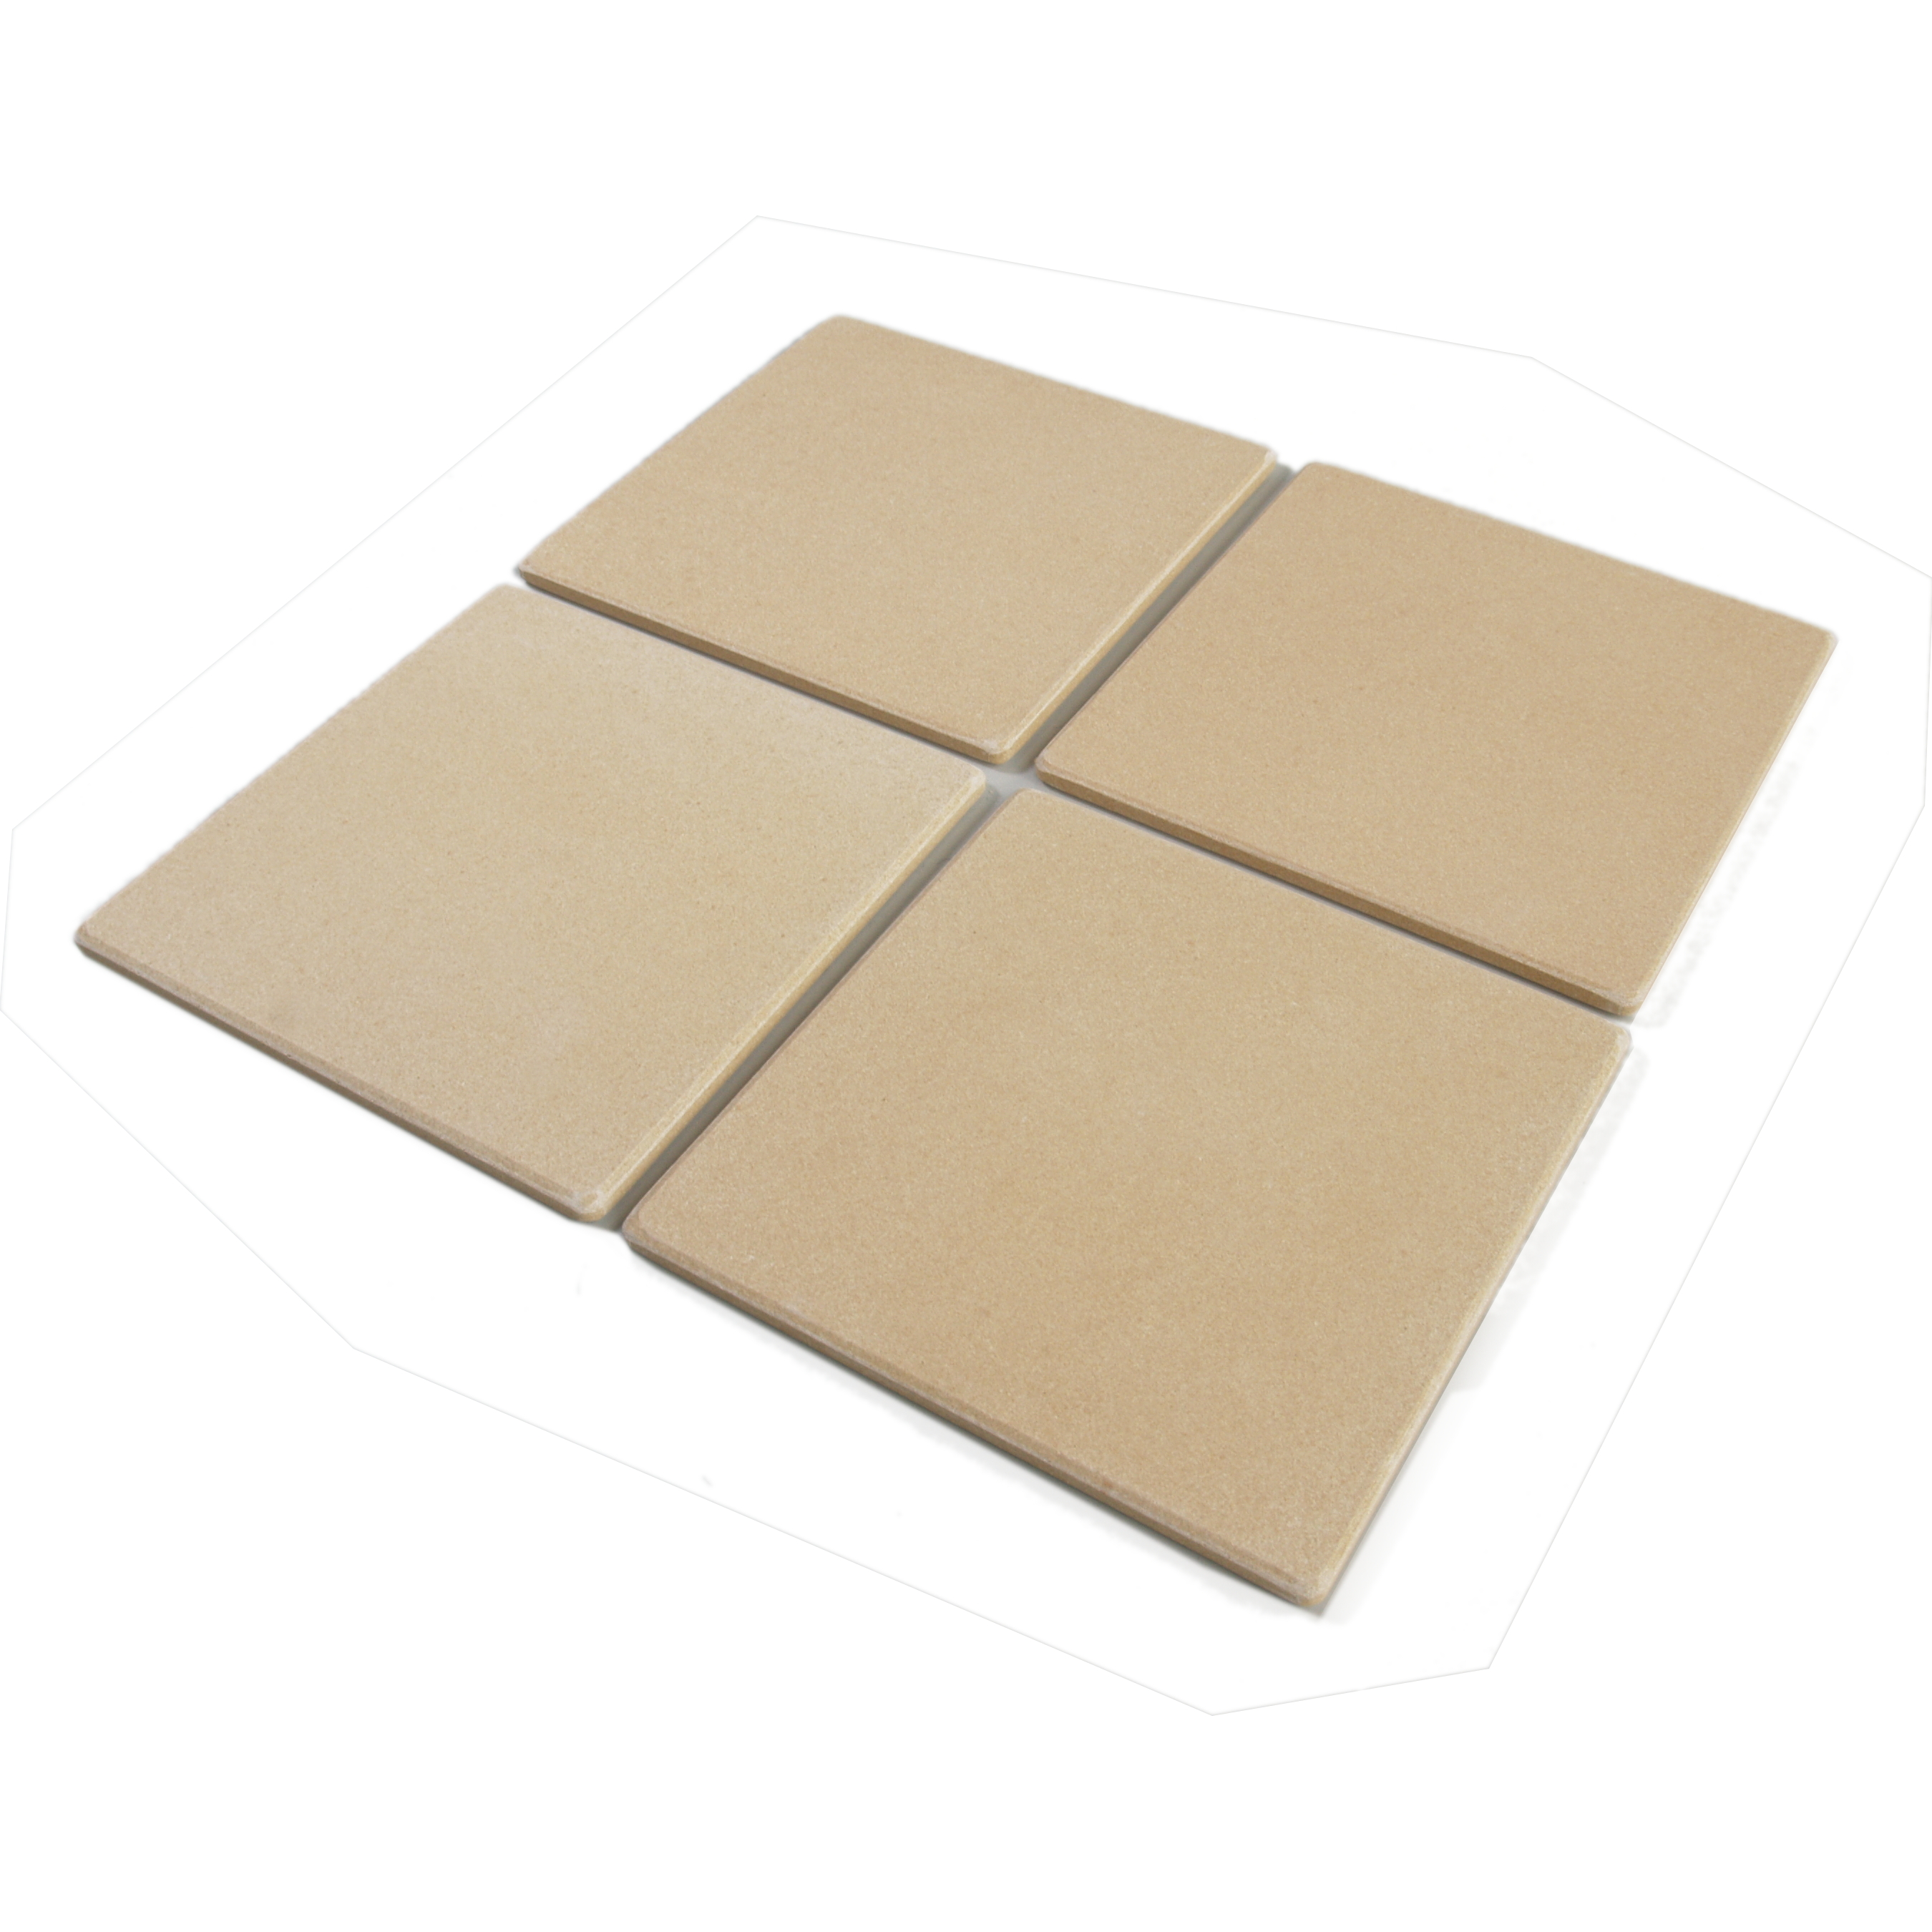 Bialetti Taste of Italy Ceramic Pizza Stone Tile, Set of 4 by Bialetti